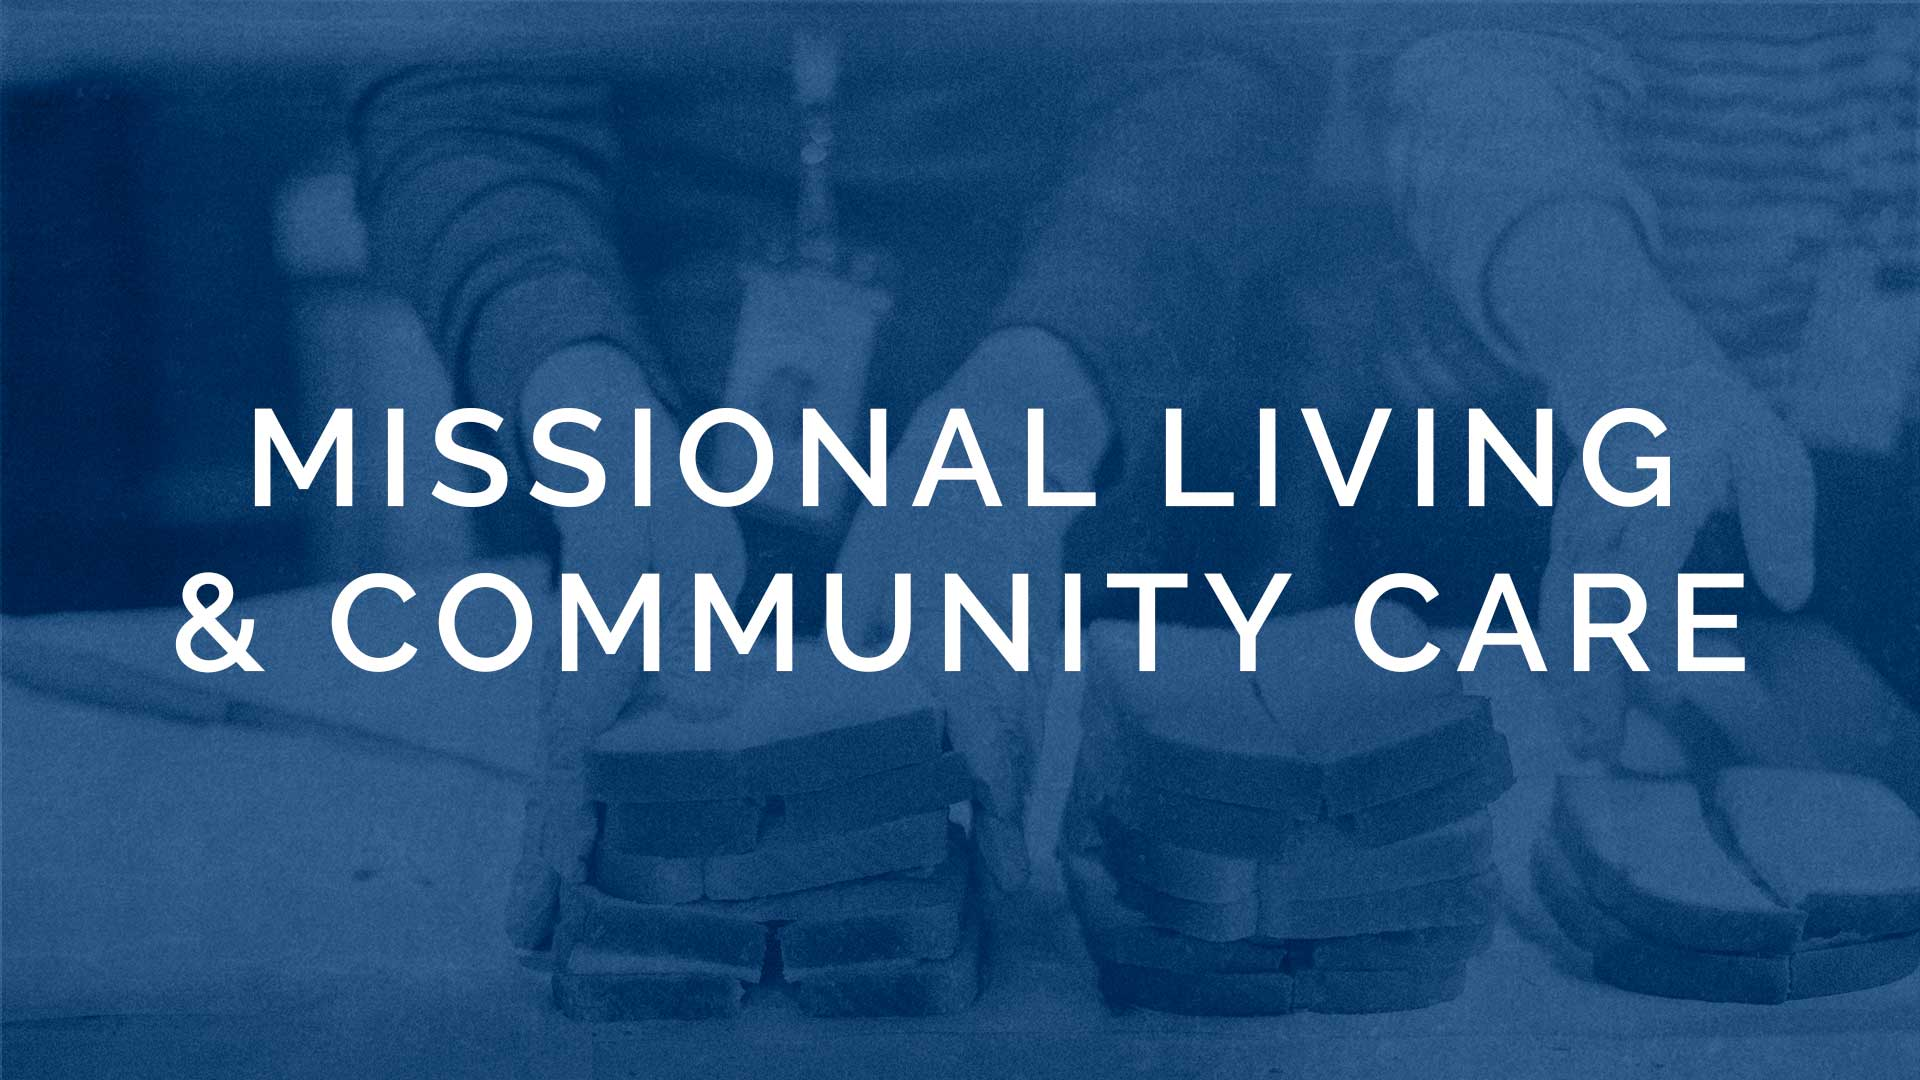 Missional Living & Community Care